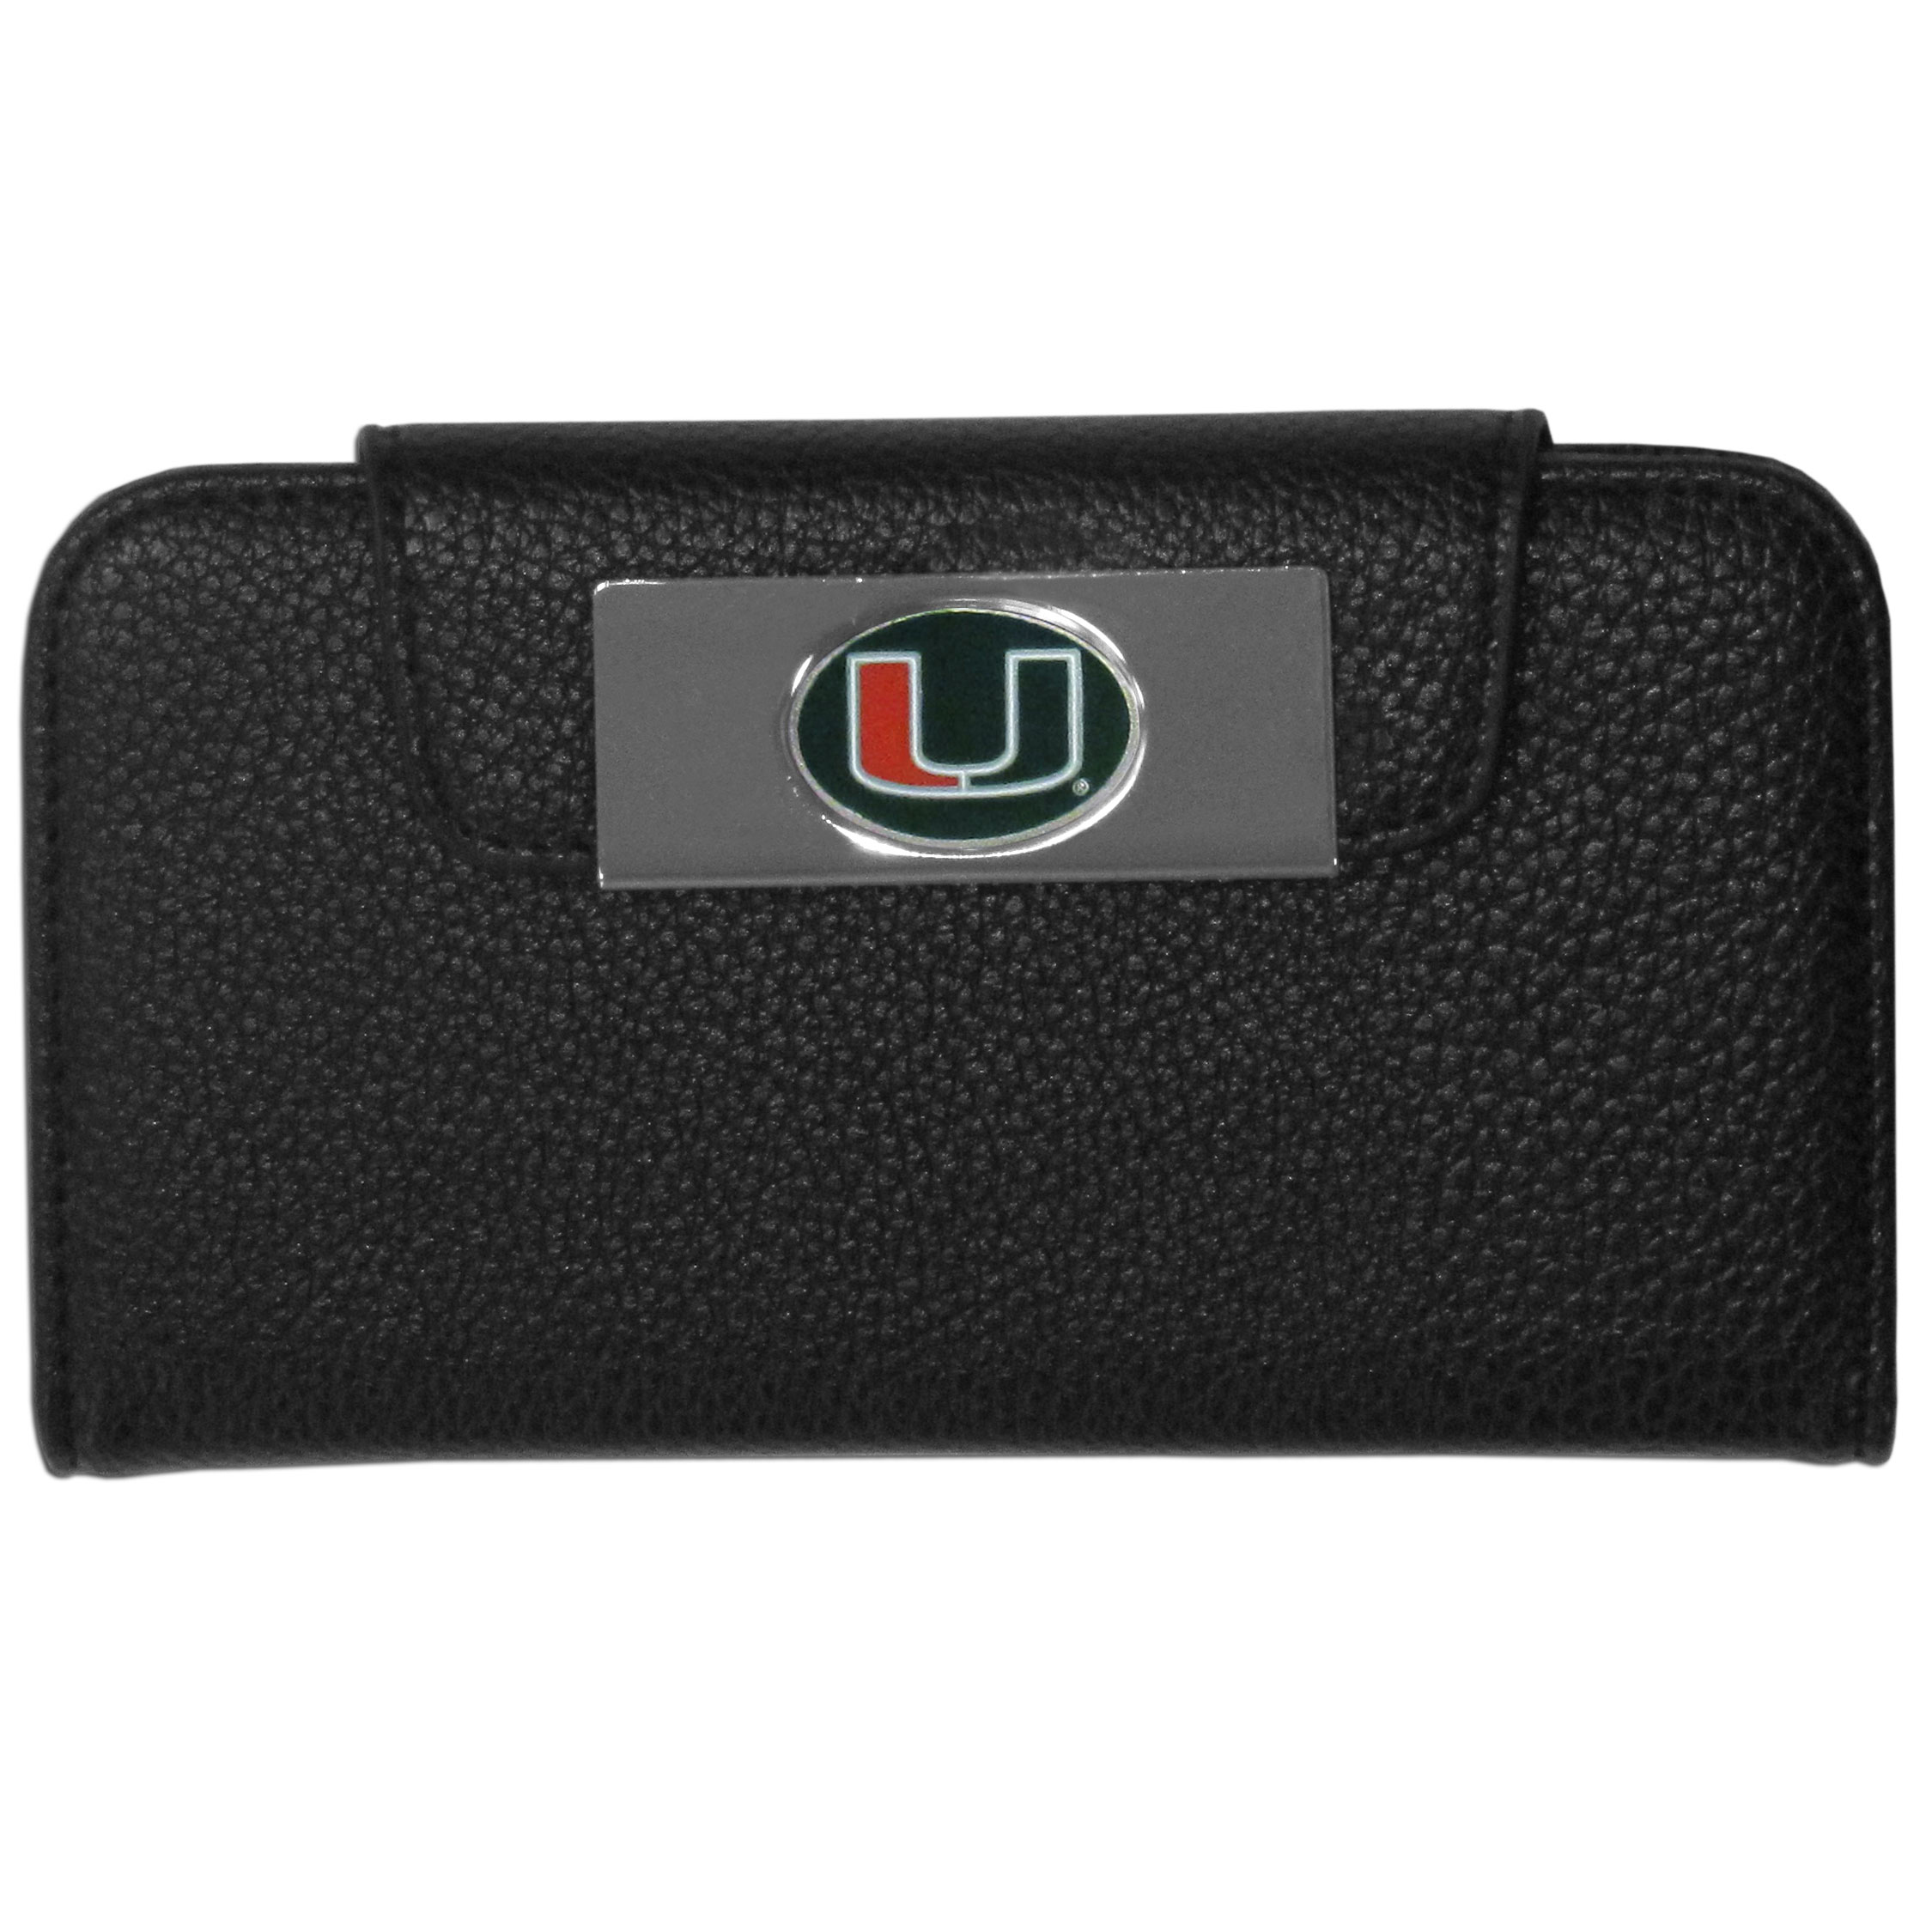 Miami Hurricanes iPhone 5/5S Wallet Case - This new & wildly popular case is ideal for those who like to travel light! The stylish case has an inner hard shell that securely holds your phone while allowing complete access to the phone's functionality. The flip cover has slots for credit cards, business cards and identification. The magnetic flip cover has a metal Miami Hurricanes emblem on a high polish chrome backing. Fits the iPhone 5/5S